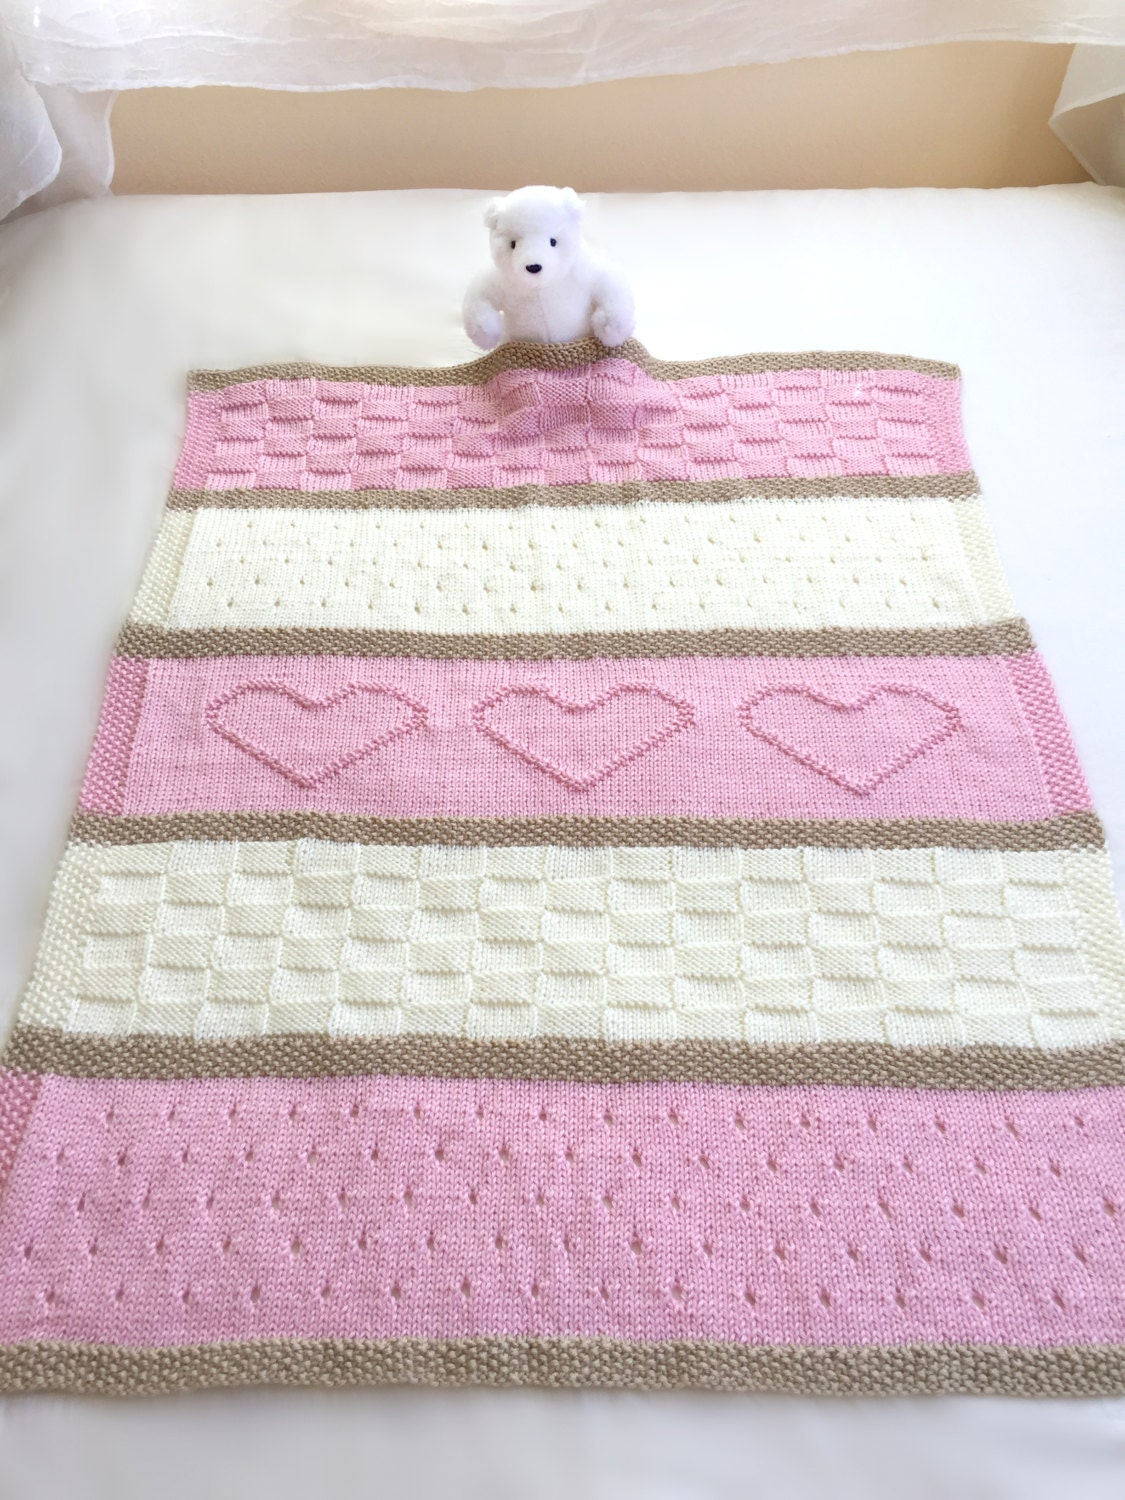 Knitting Patterns Circular Needles : Baby Blanket Pattern Knit Baby Blanket Pattern Heart Baby